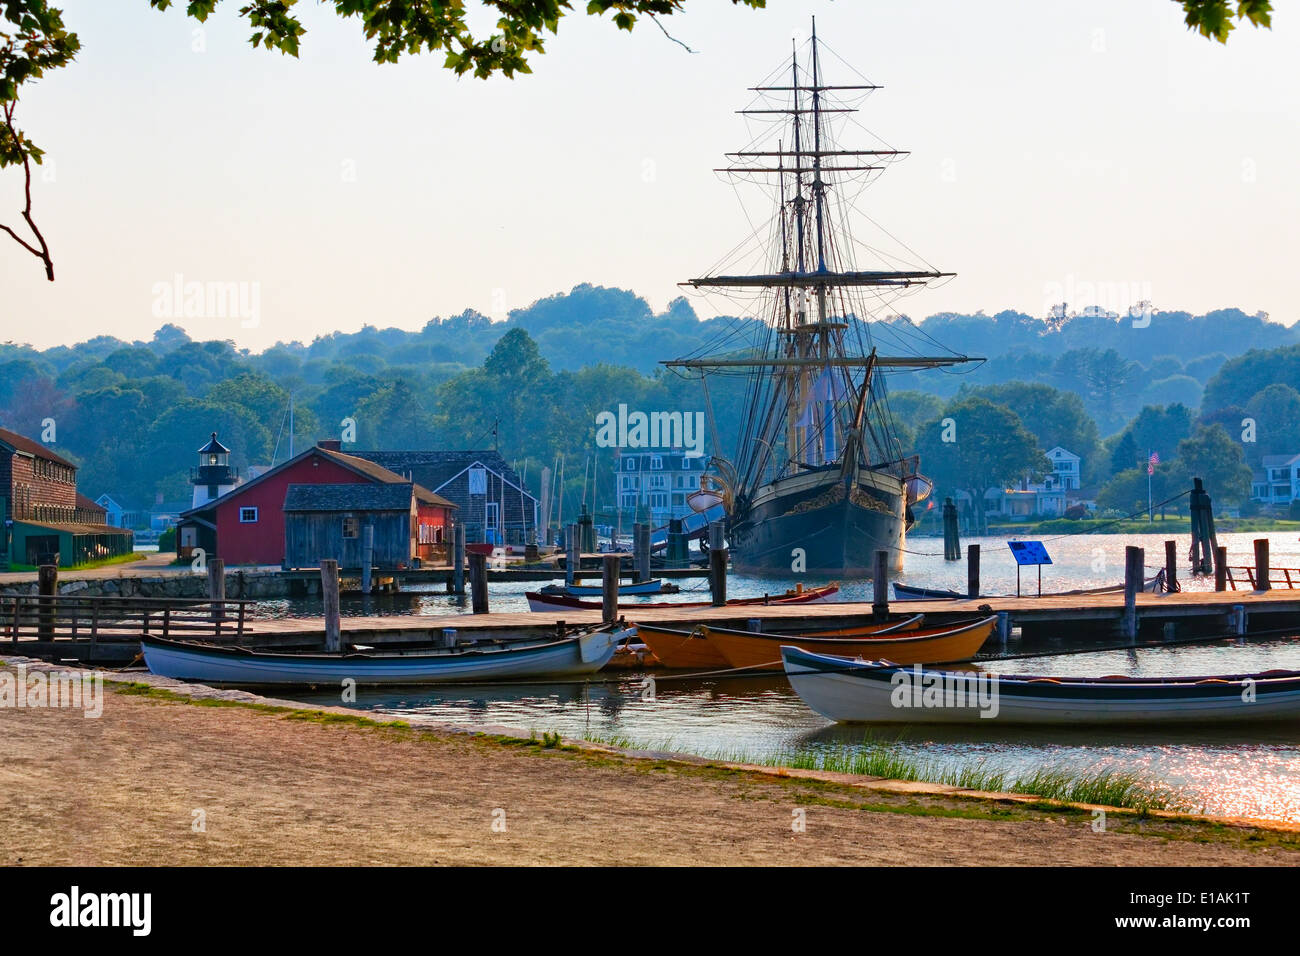 Scenic View of the Historic Mystic Seaport with the Joseph Conrad Tall Ship, Connecticut - Stock Image